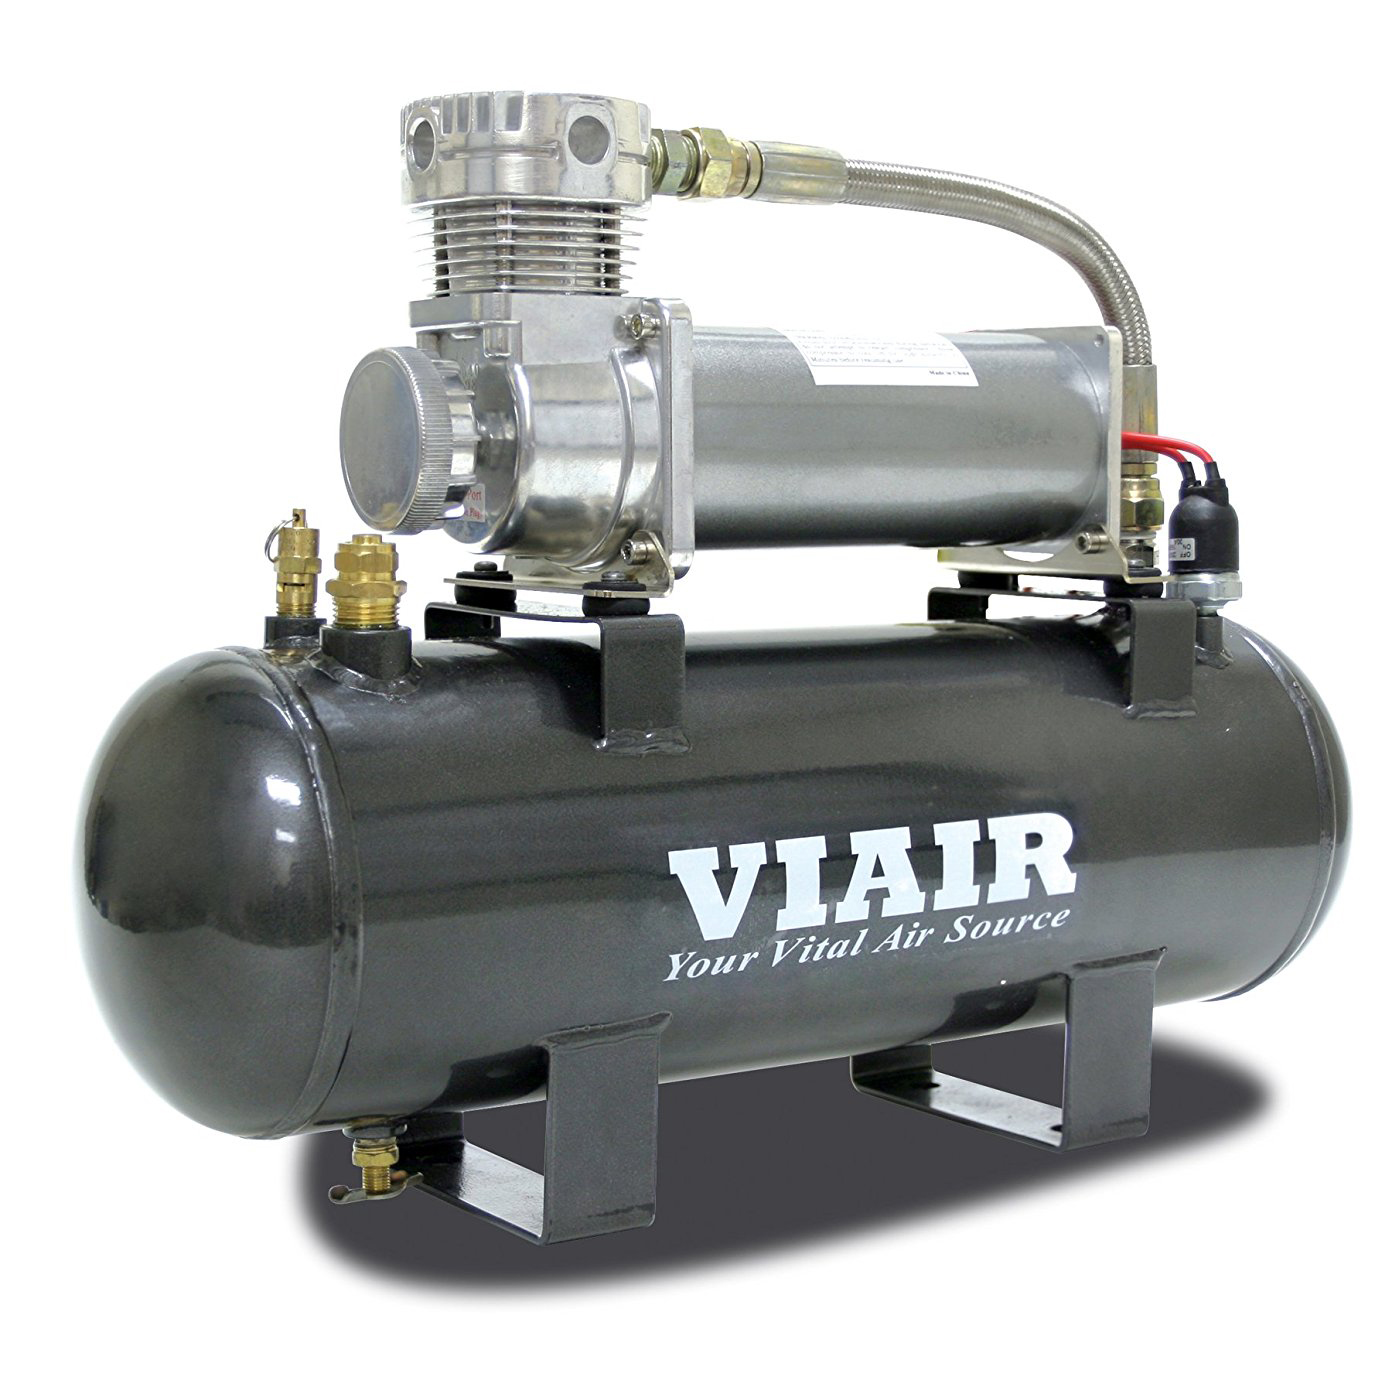 VIAIR 200 PSI 2.0 Gal Tank High-Flow-200 Air Source Kit